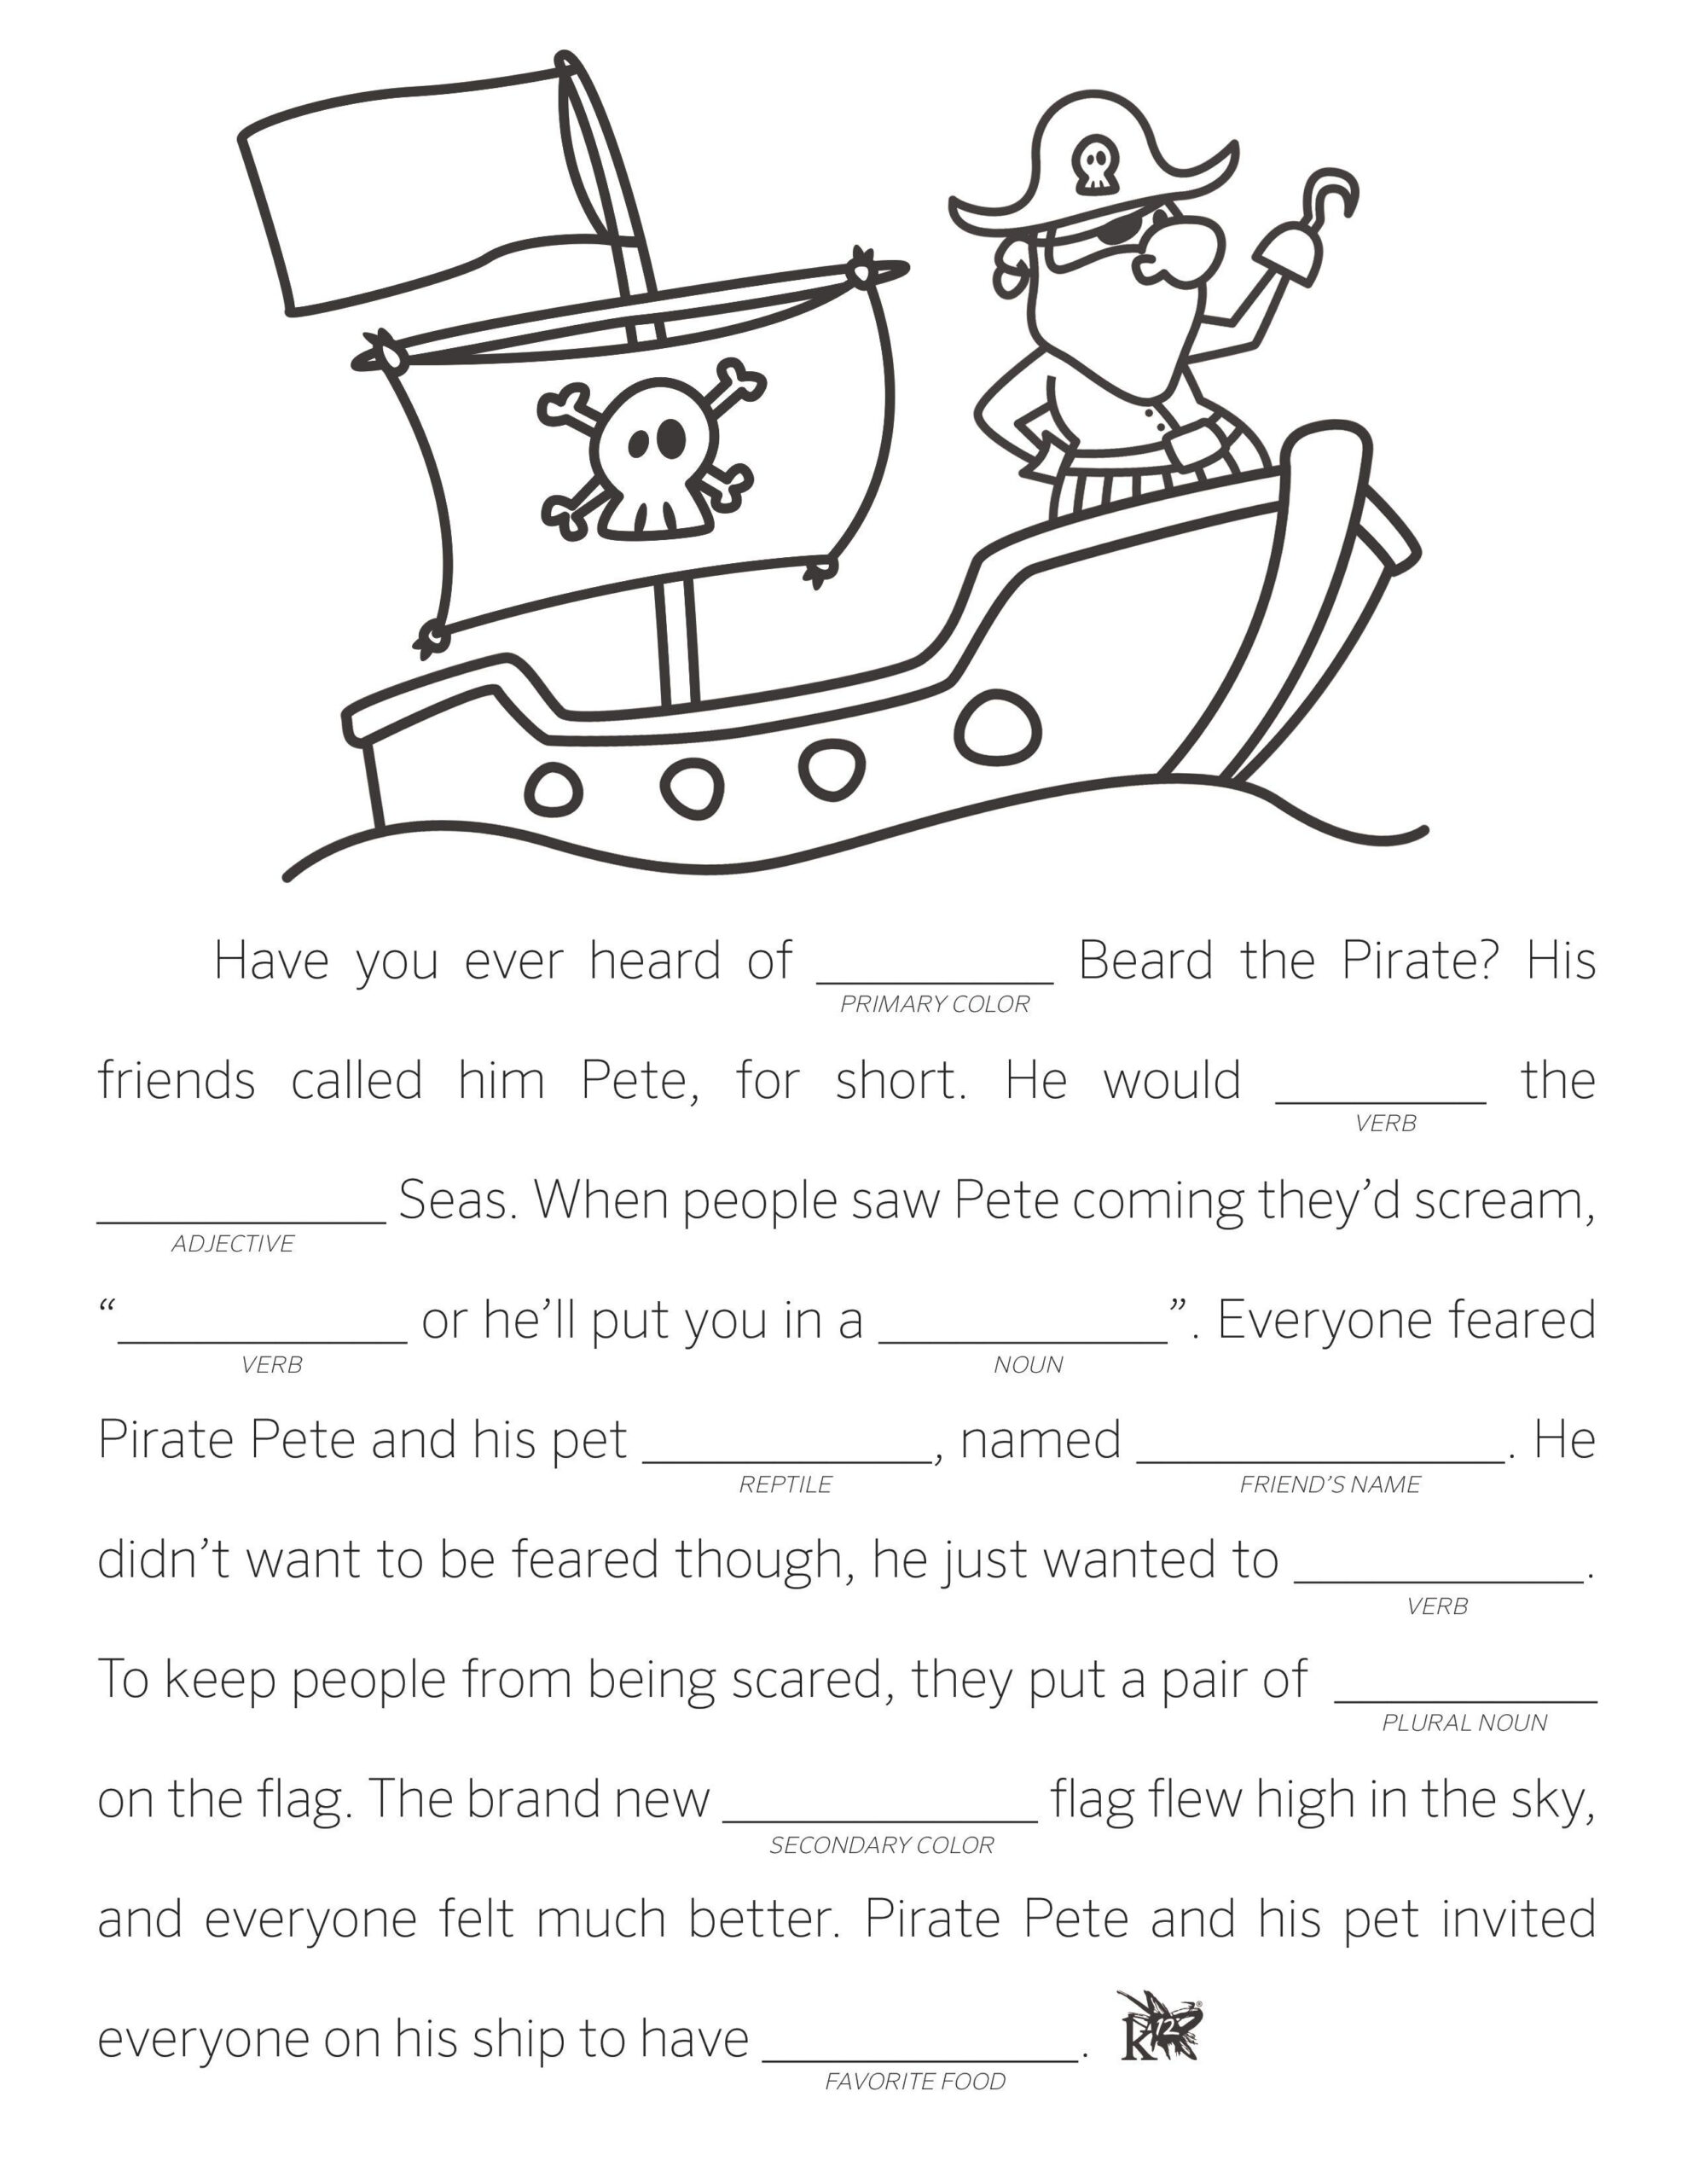 Make Your Own Fill In The Blank Stories - Learning Liftoff